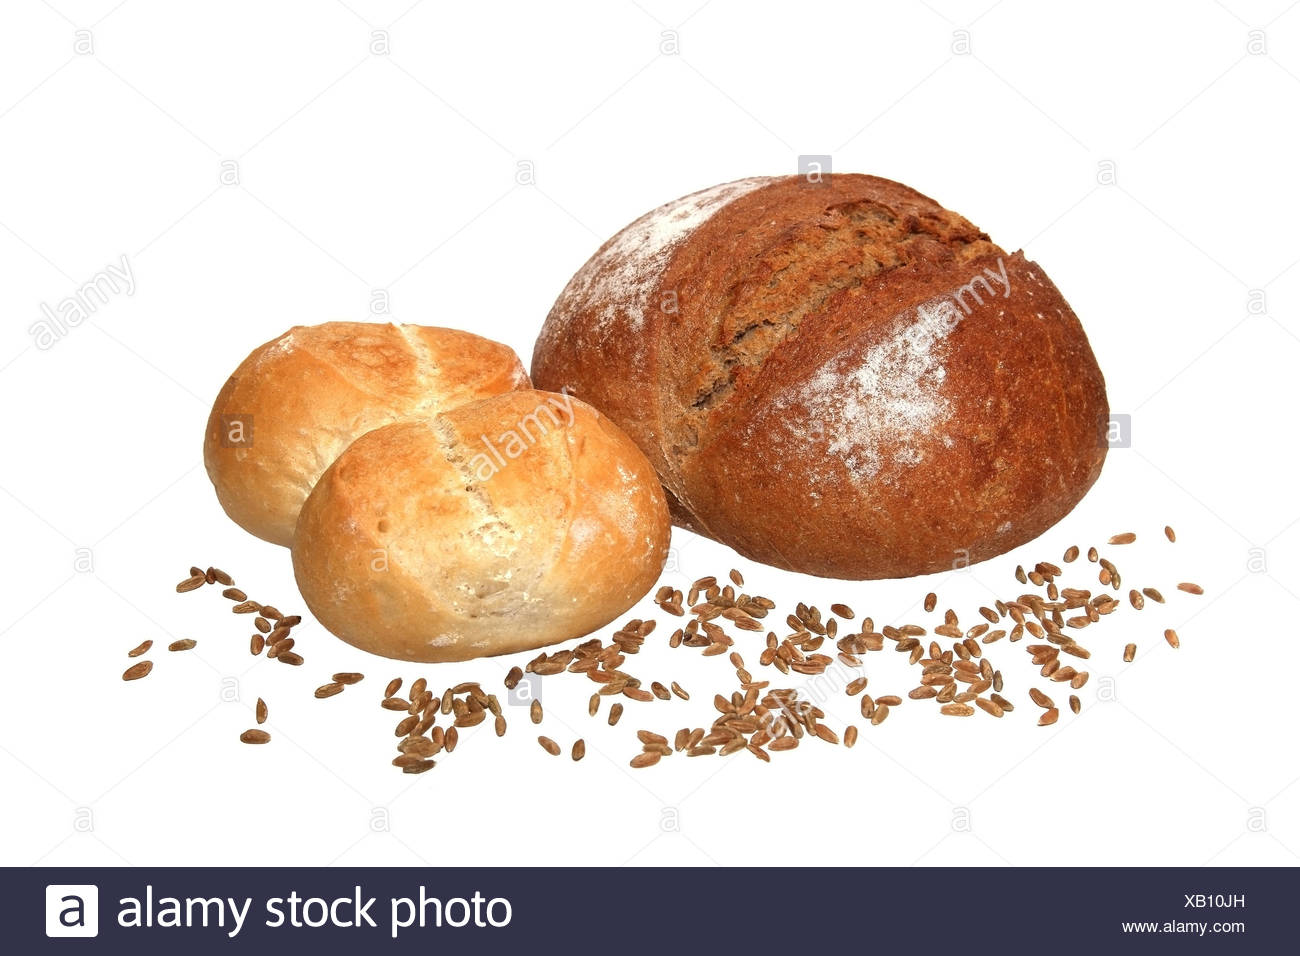 bakery products with cereal grains - Stock Image